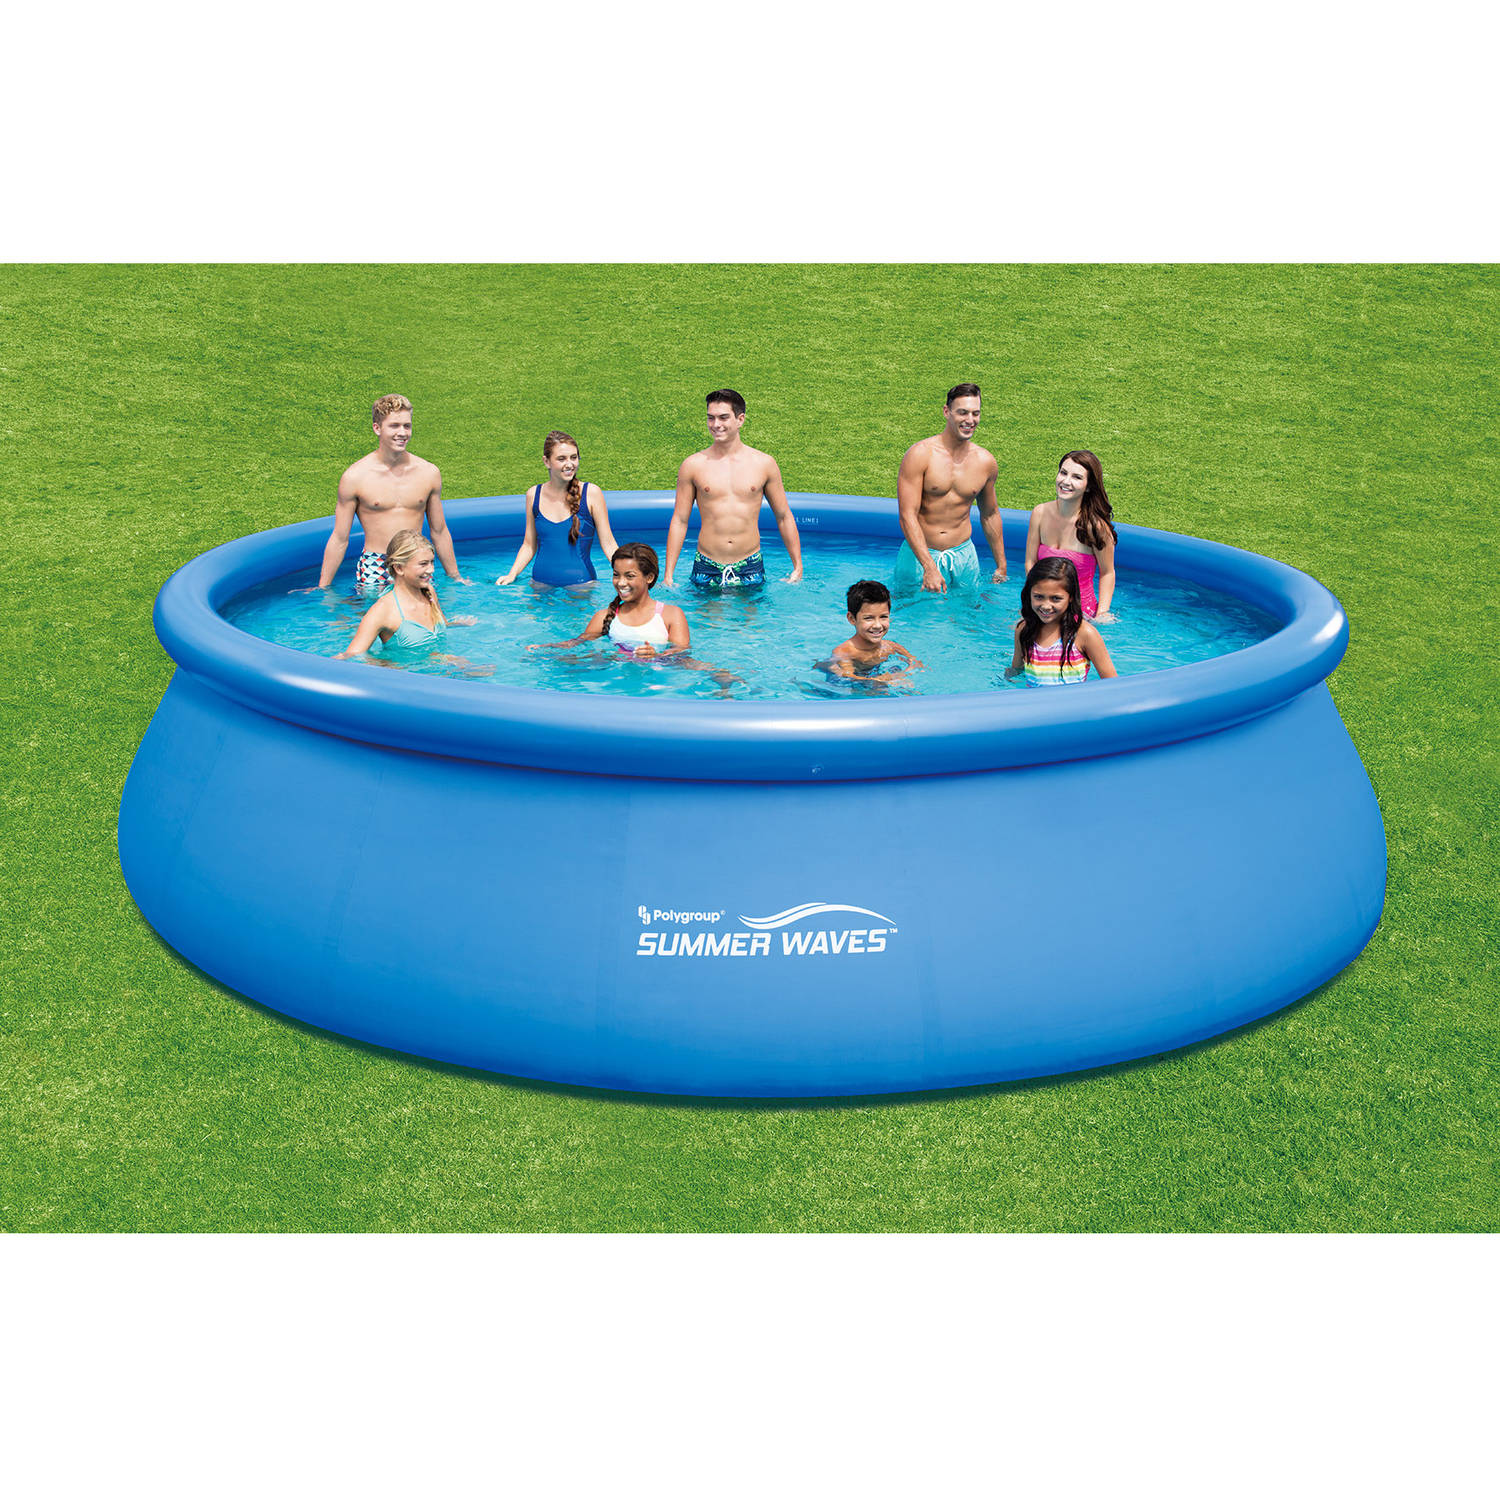 Summer Waves 18 X 48 Quick Set Round Above Ground Swimming Pool With Deluxe Accessory